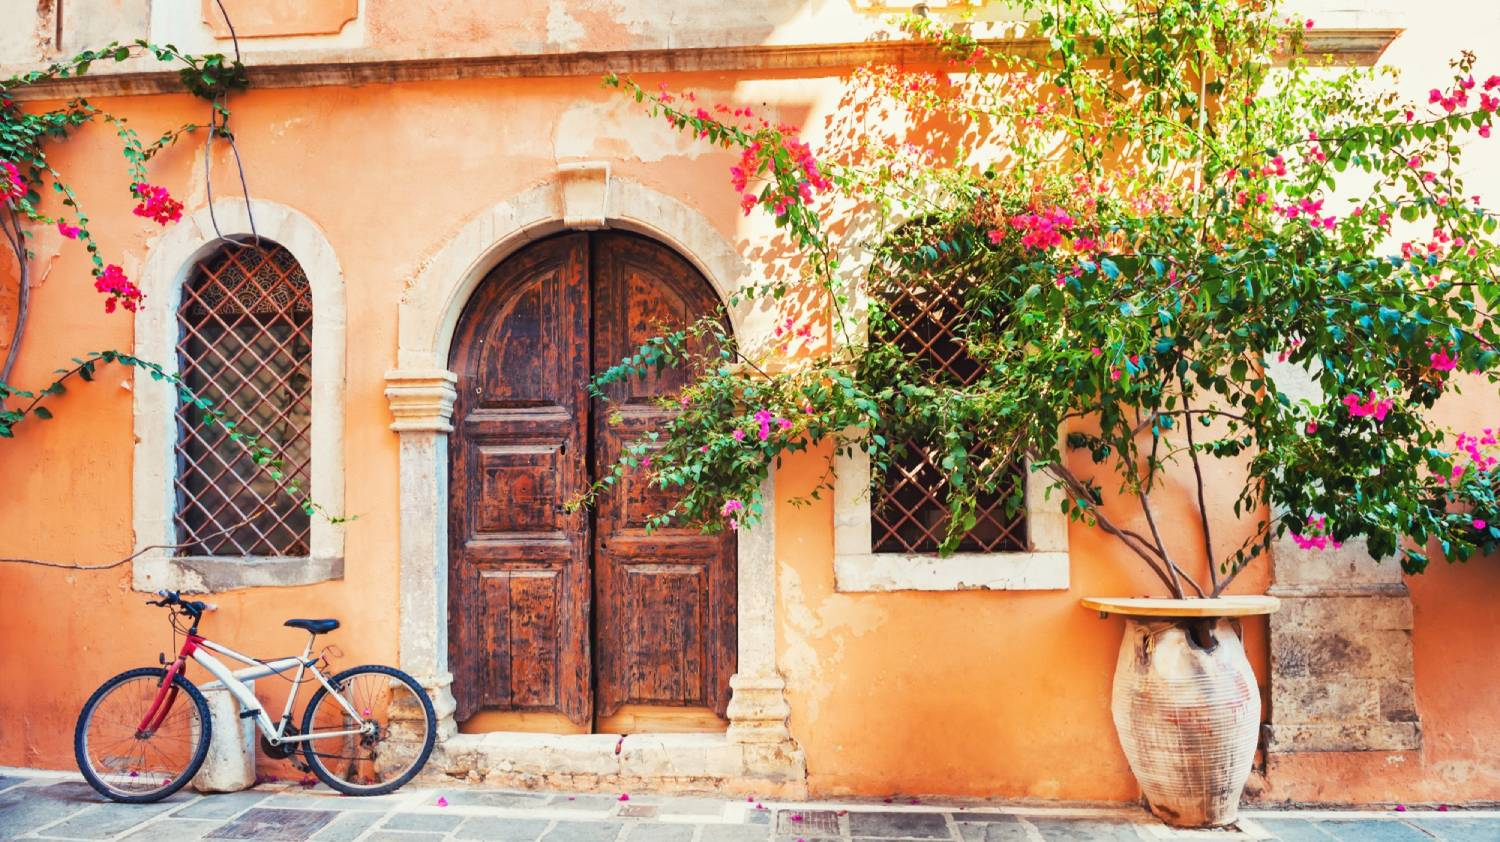 Chania Old Town - Things To Do In Crete